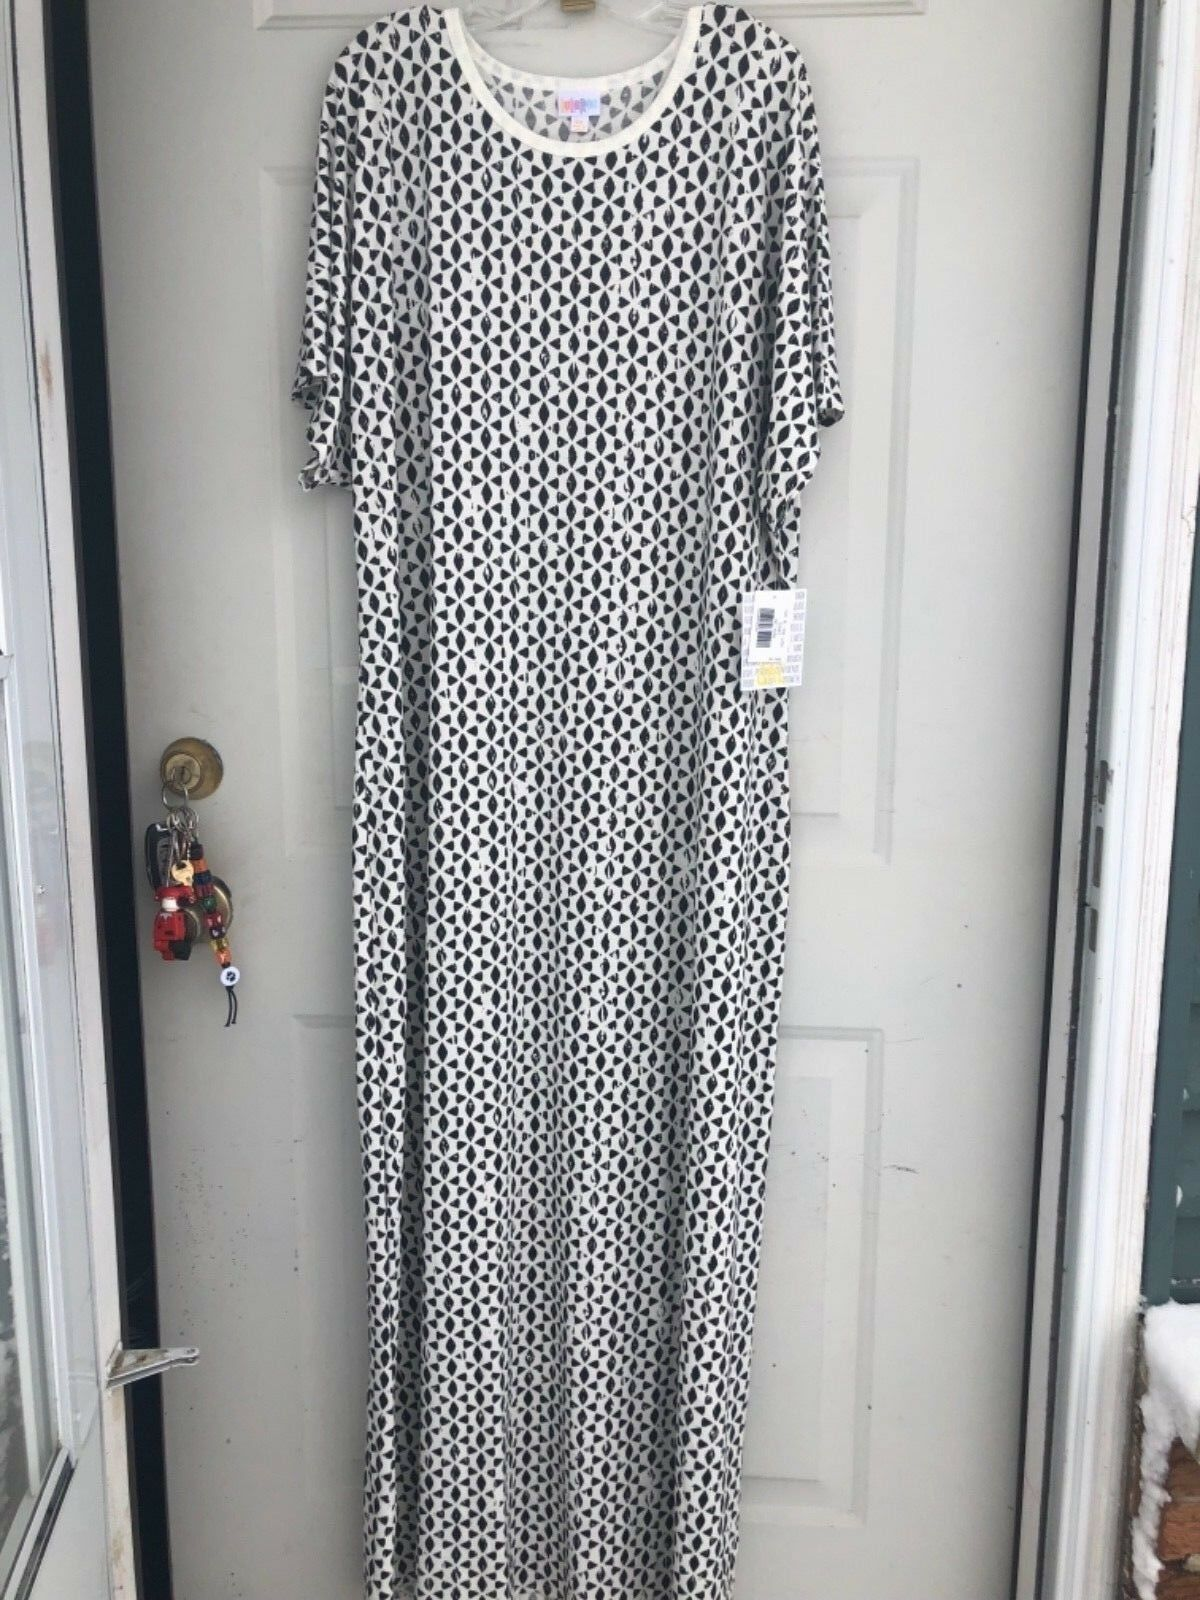 LULAROE LADIES FULL LENGTH DRESS  MARIA  SIZE 3X NEW WITH TAGS BUY TODAY